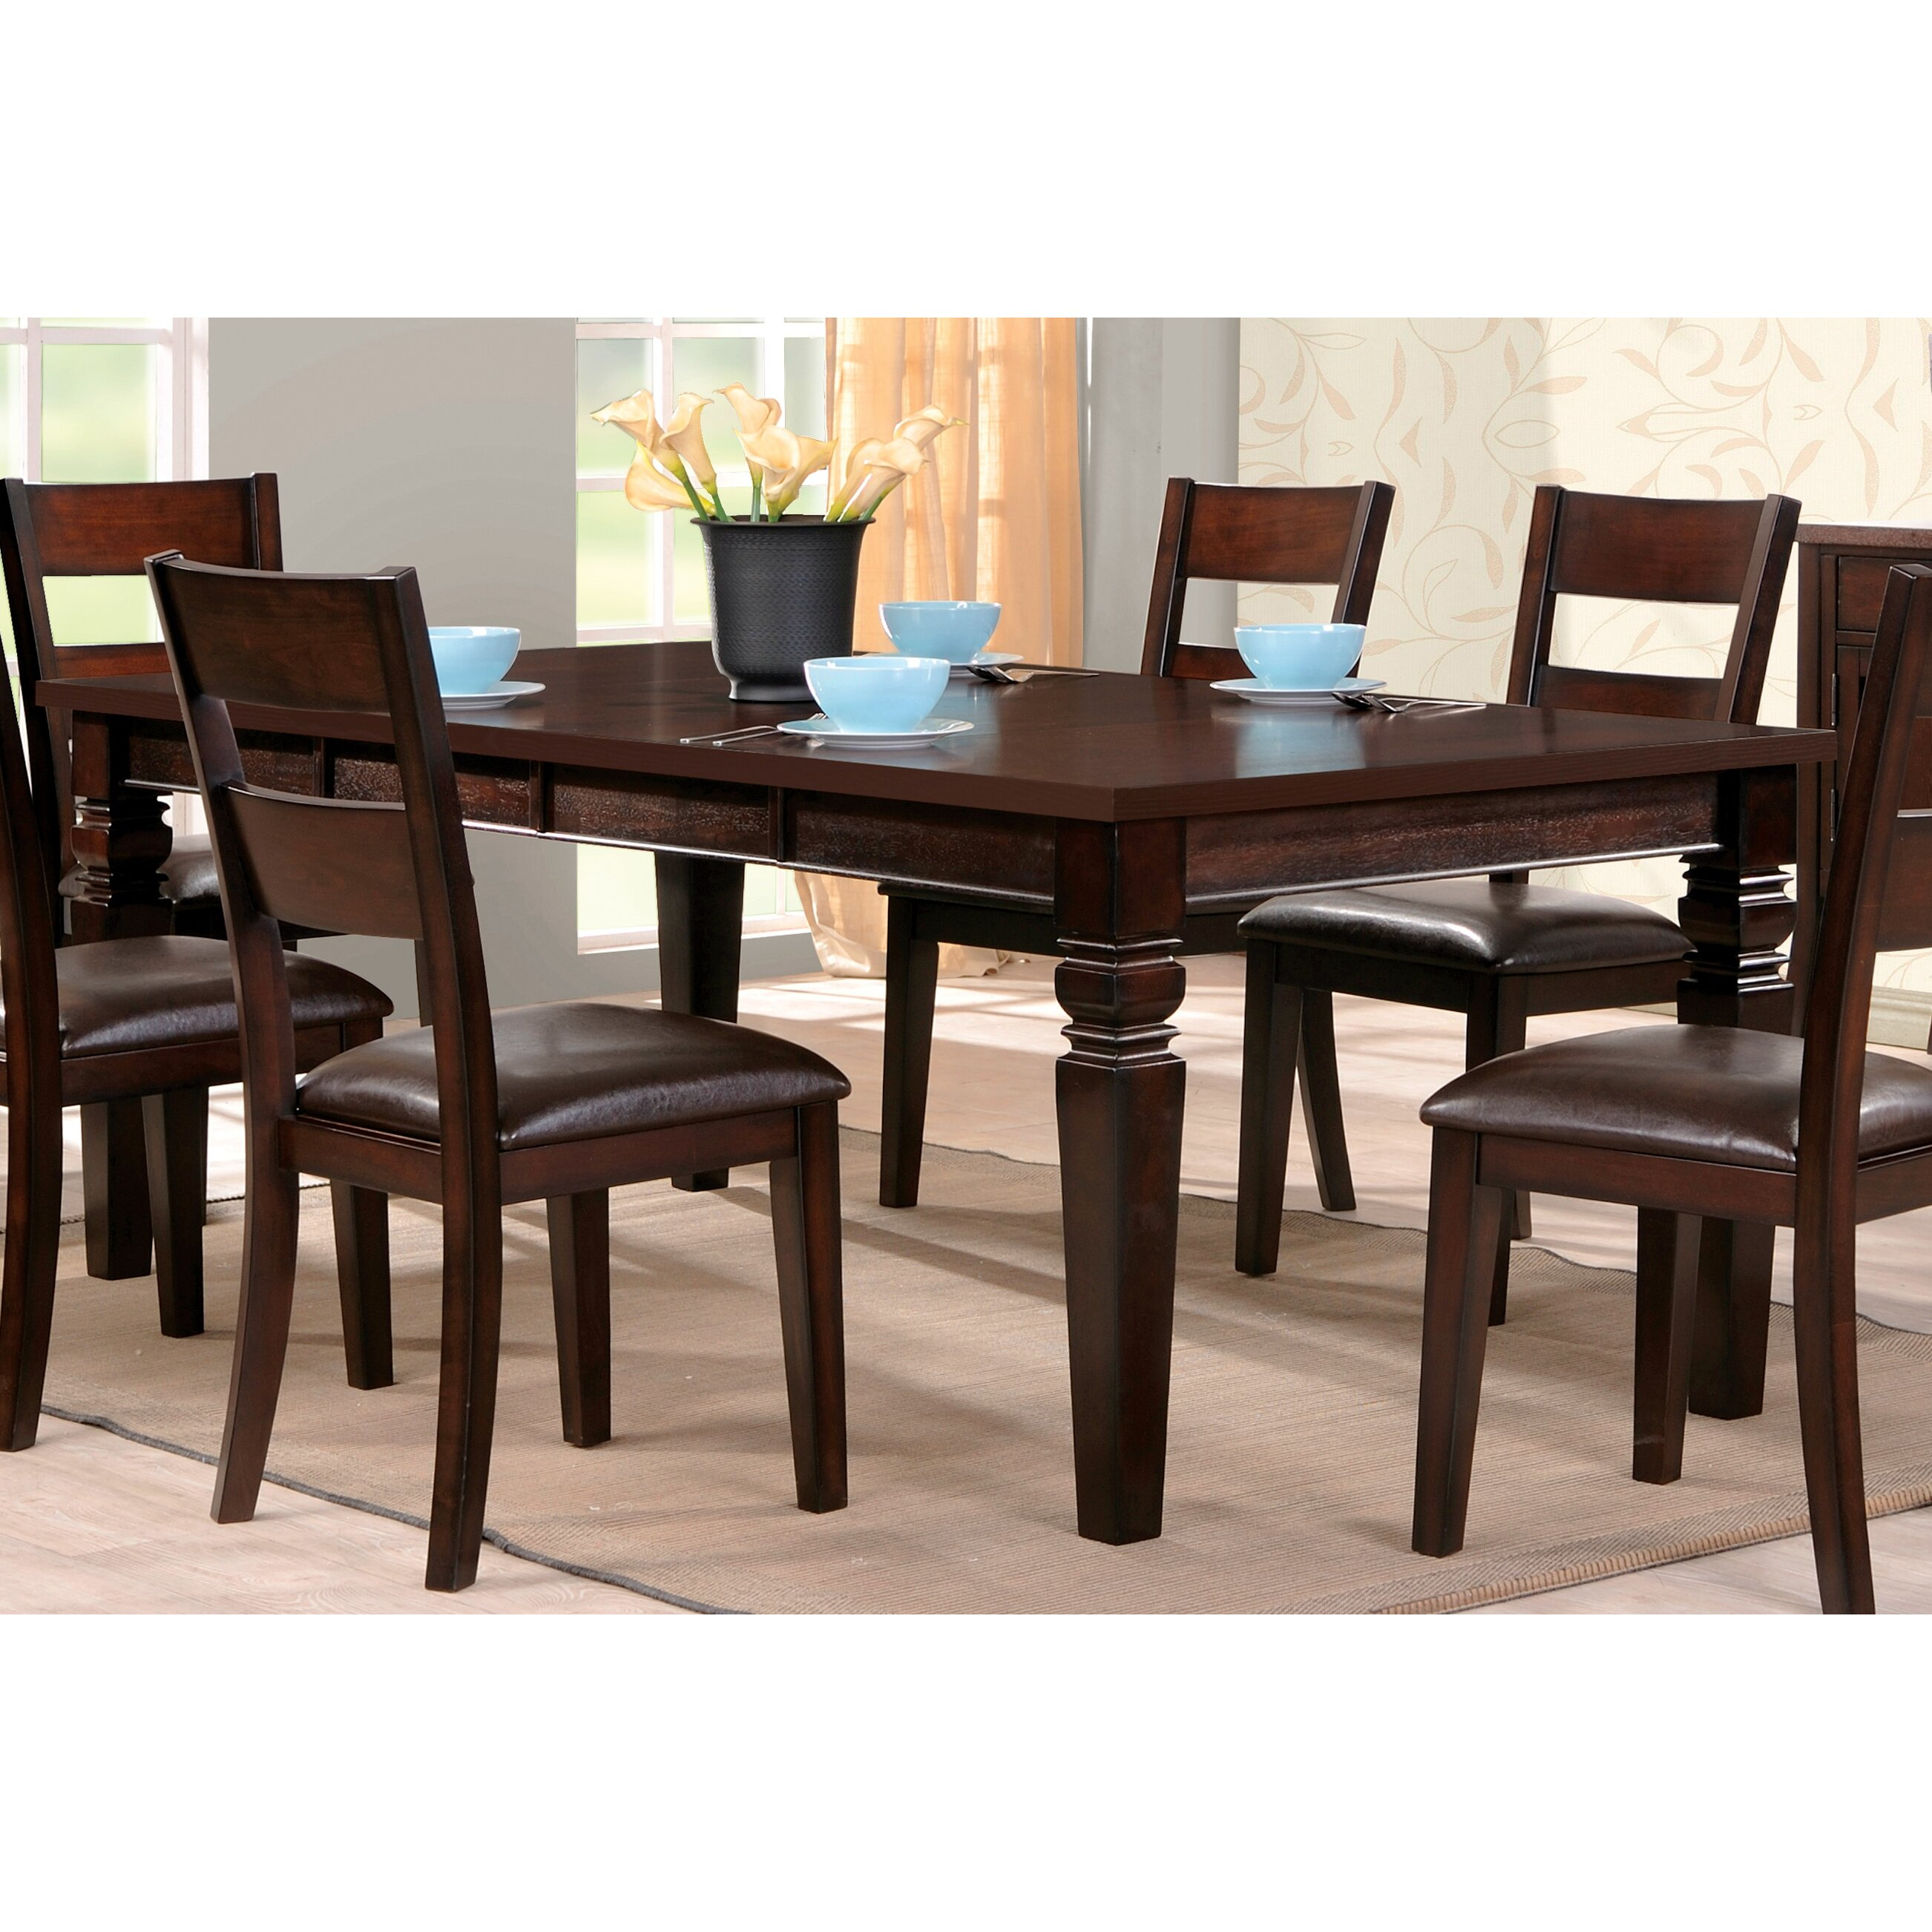 Steve Silver Furniture Gibson Counter Height Extendable Dining Table Reviews Wayfair